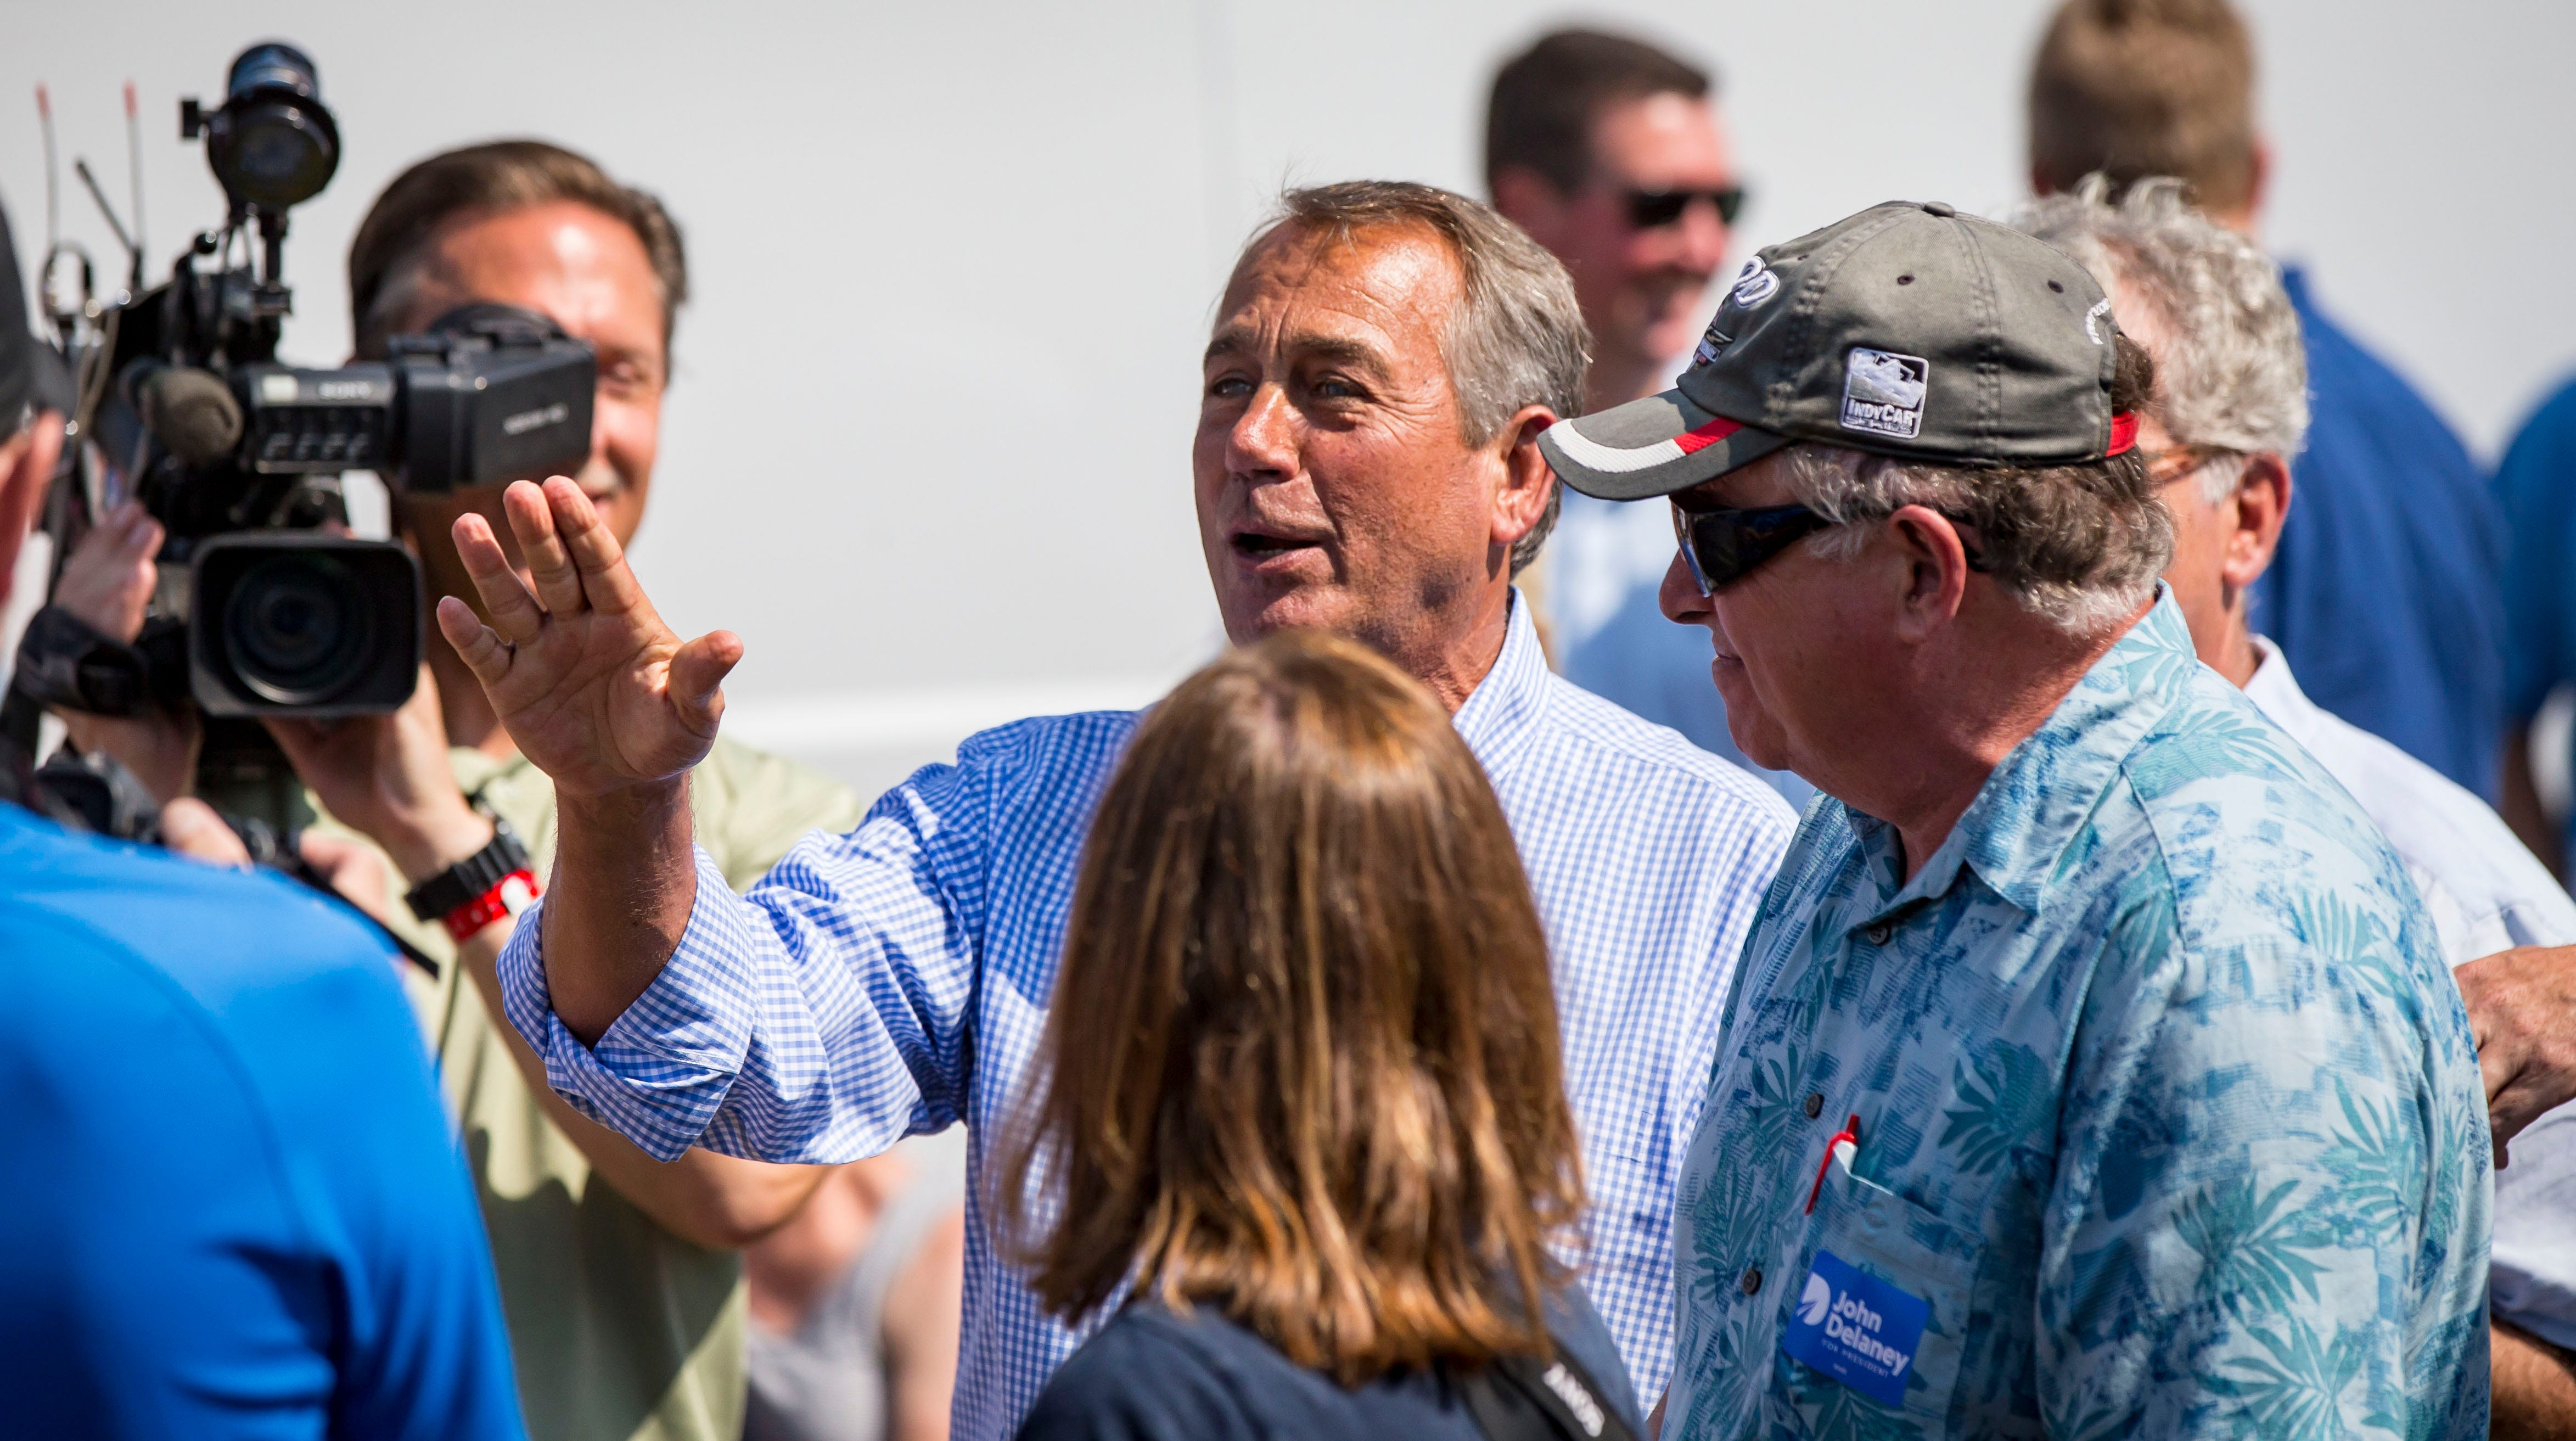 2020 buzz, cameo appearances and more: Political highlights from the 2018 Iowa State Fair